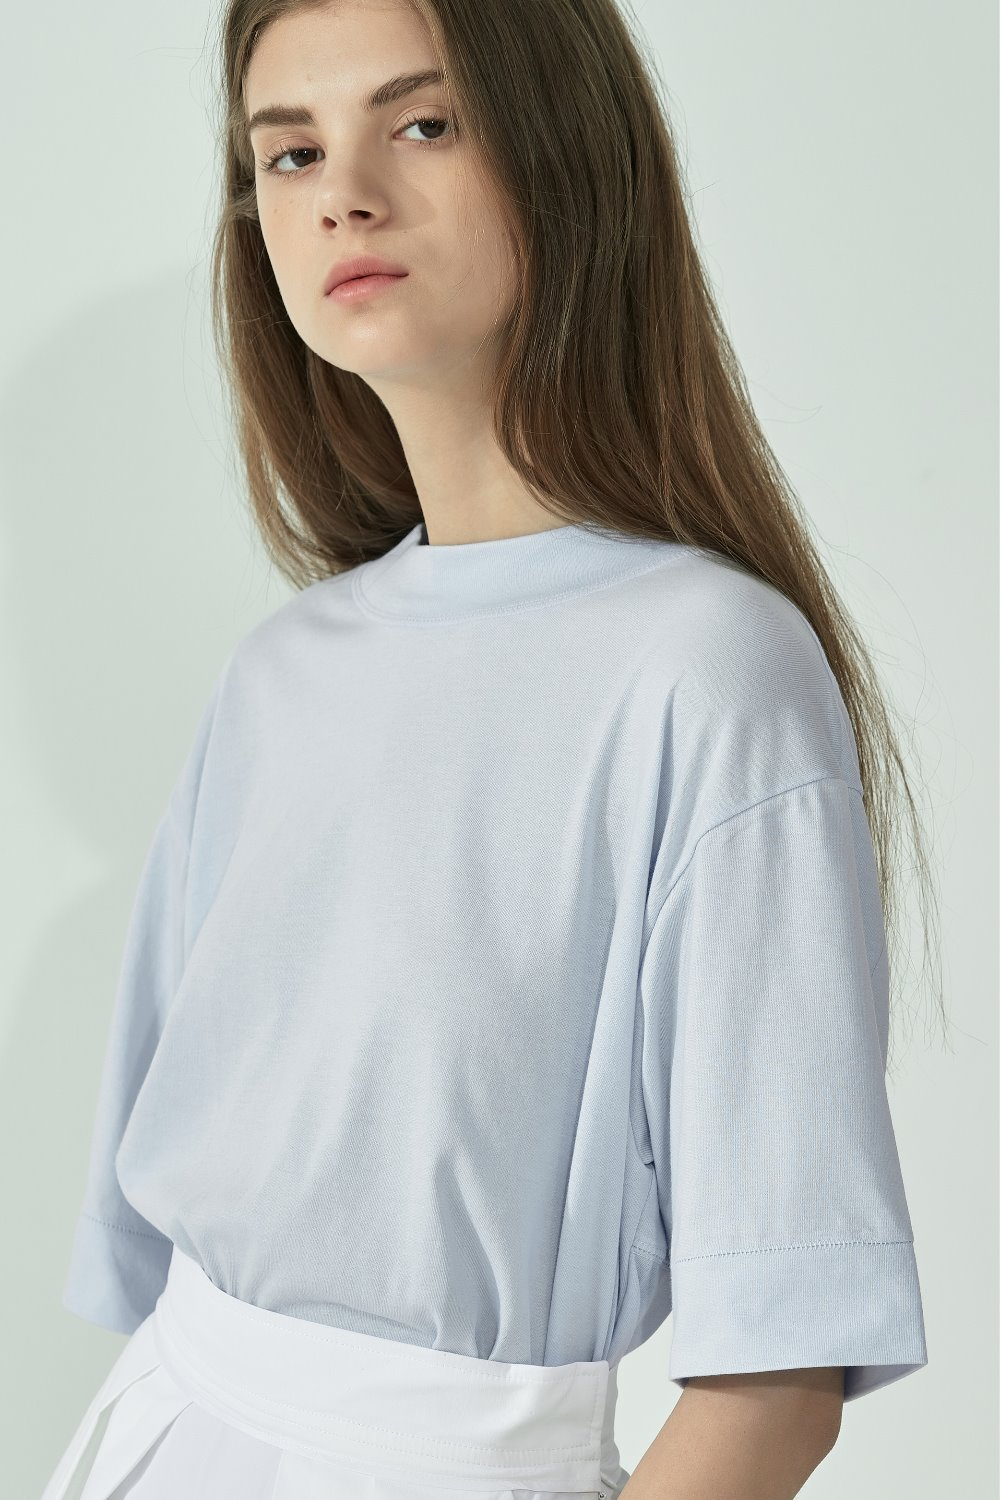 MOCK-NECK PANEL TTS91CO08 SKY BLUE